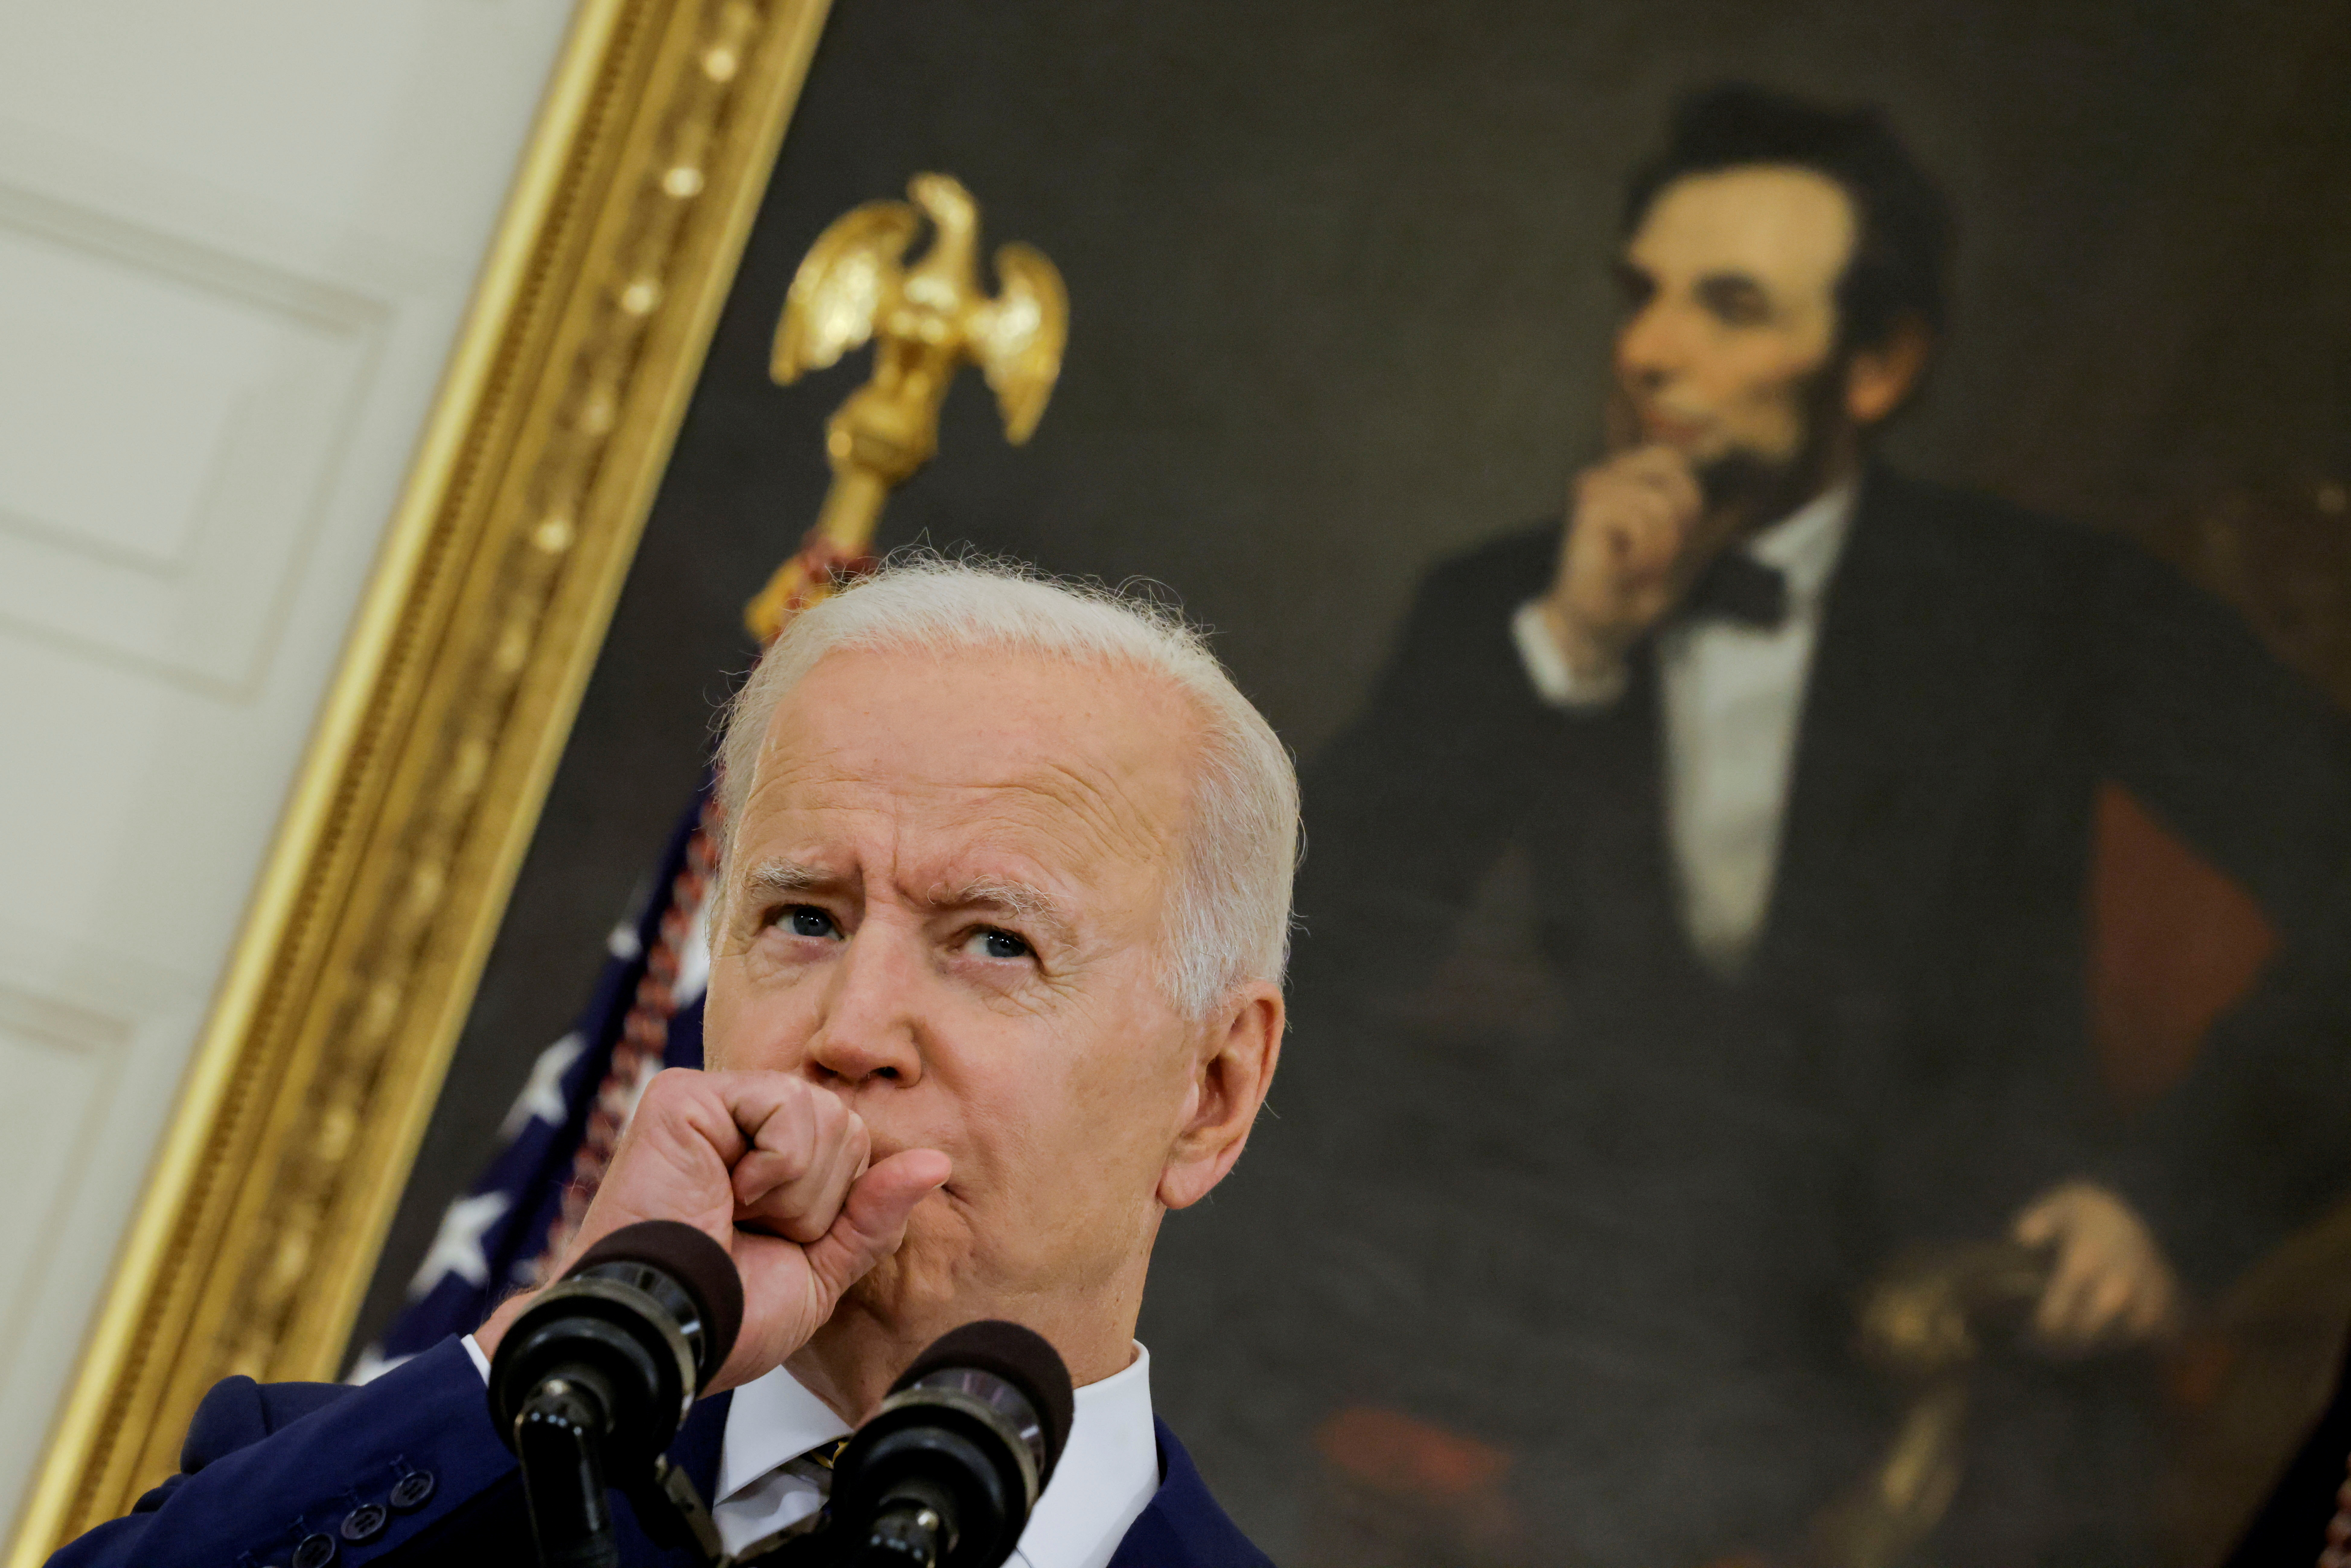 U.S. President Joe Biden speaks about the administration's coronavirus disease (COVID-19) response and the vaccination program during brief remarks in the State Dining Room of the White House in Washington, U.S., June 18, 2021. REUTERS/Carlos Barria/File Photo